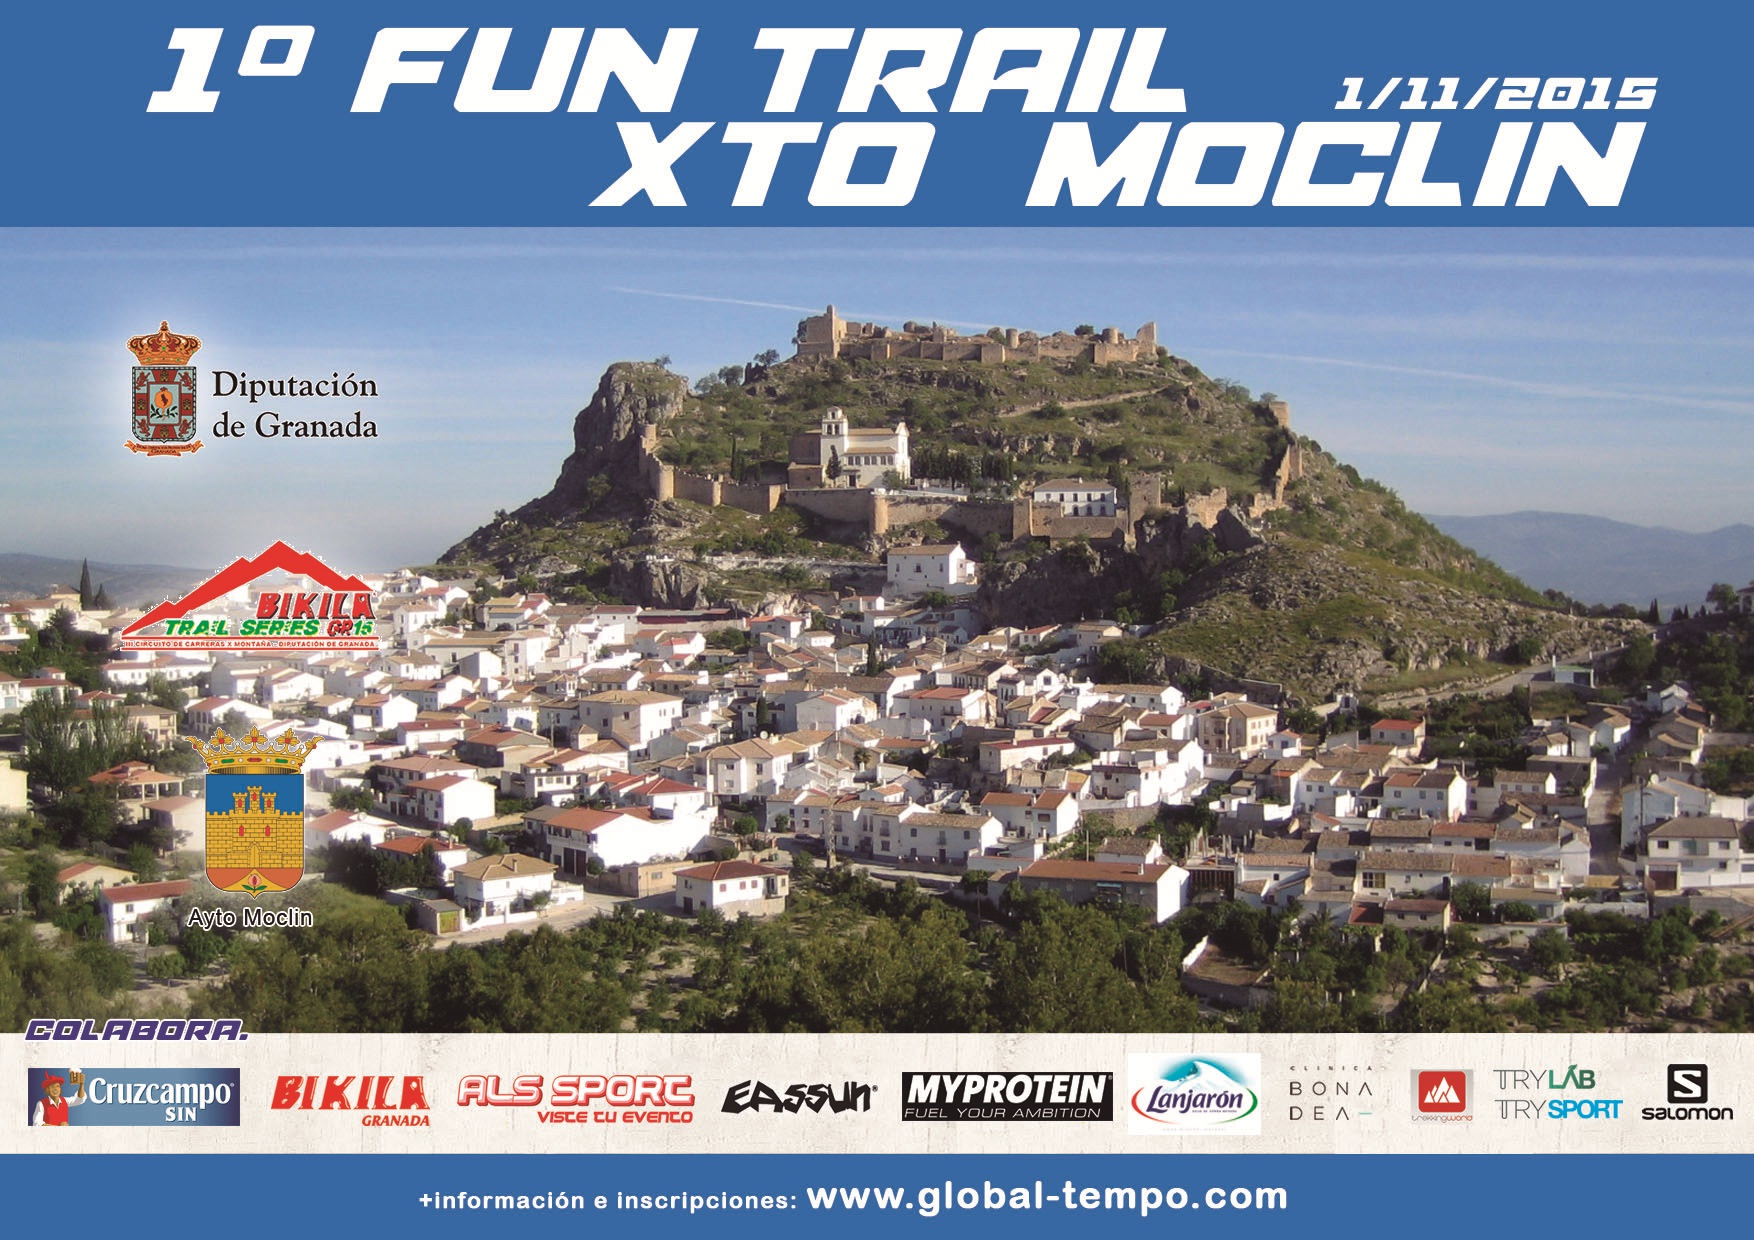 I FUN TRAIL XTO MOCL�N